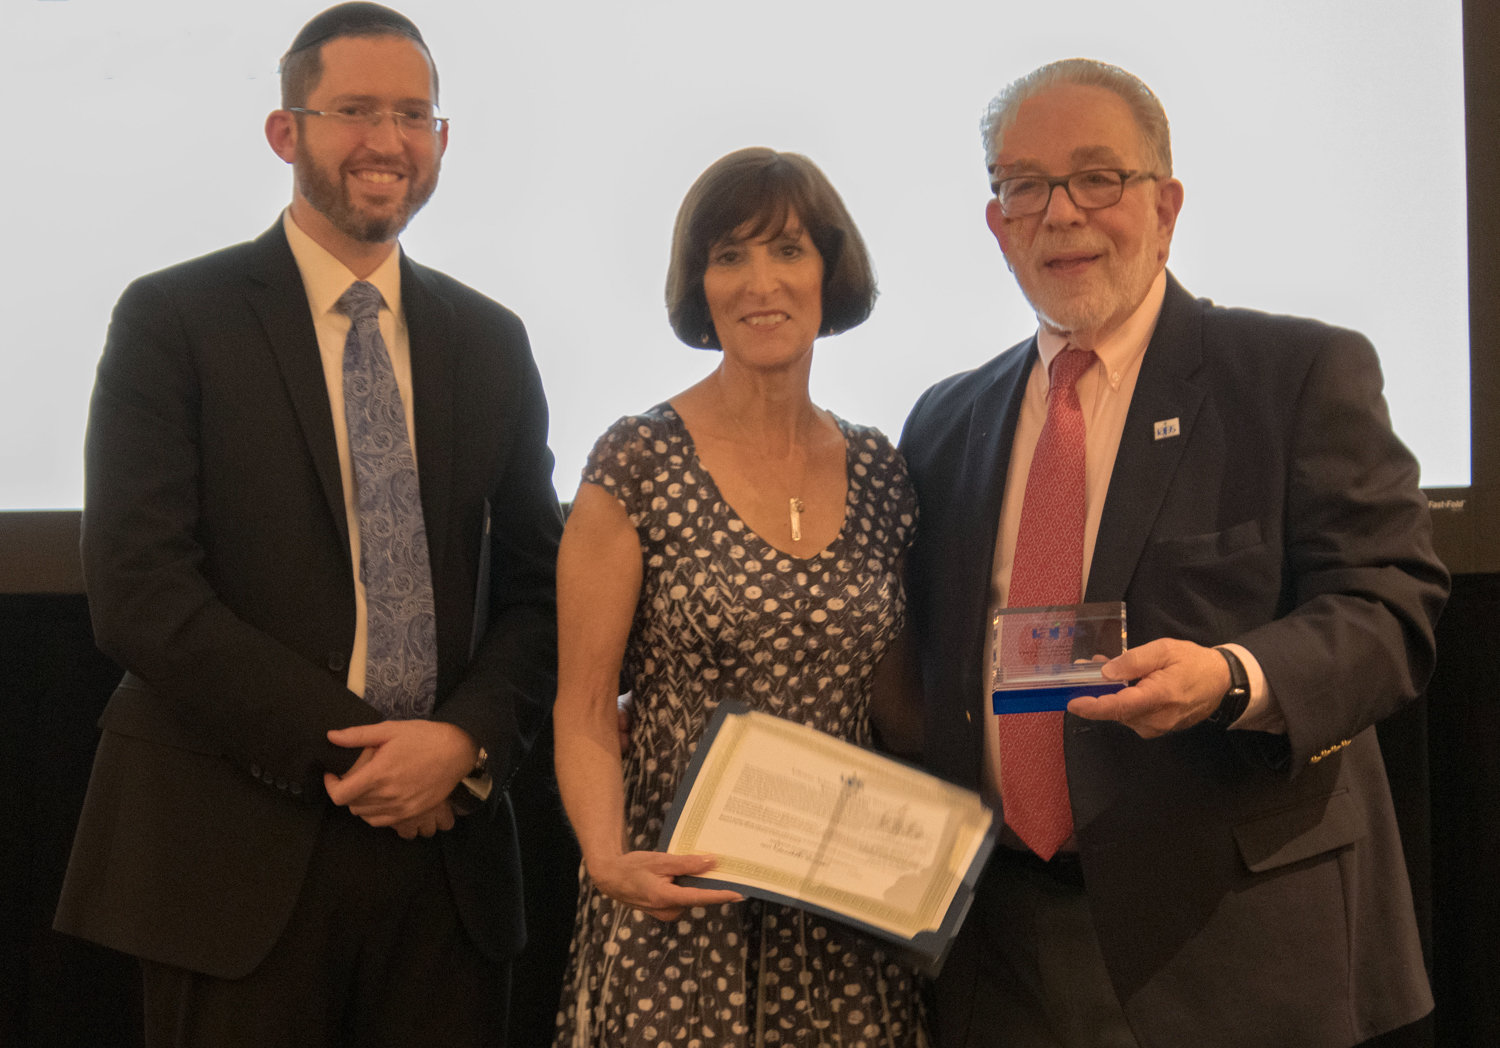 Karen Franklin smiles with her lifetime achievement award from the International Association of Jewish Genealogical Societies. She is joined by the organization's president, Ken Bravo, right, and board secretary Avraham Groll.